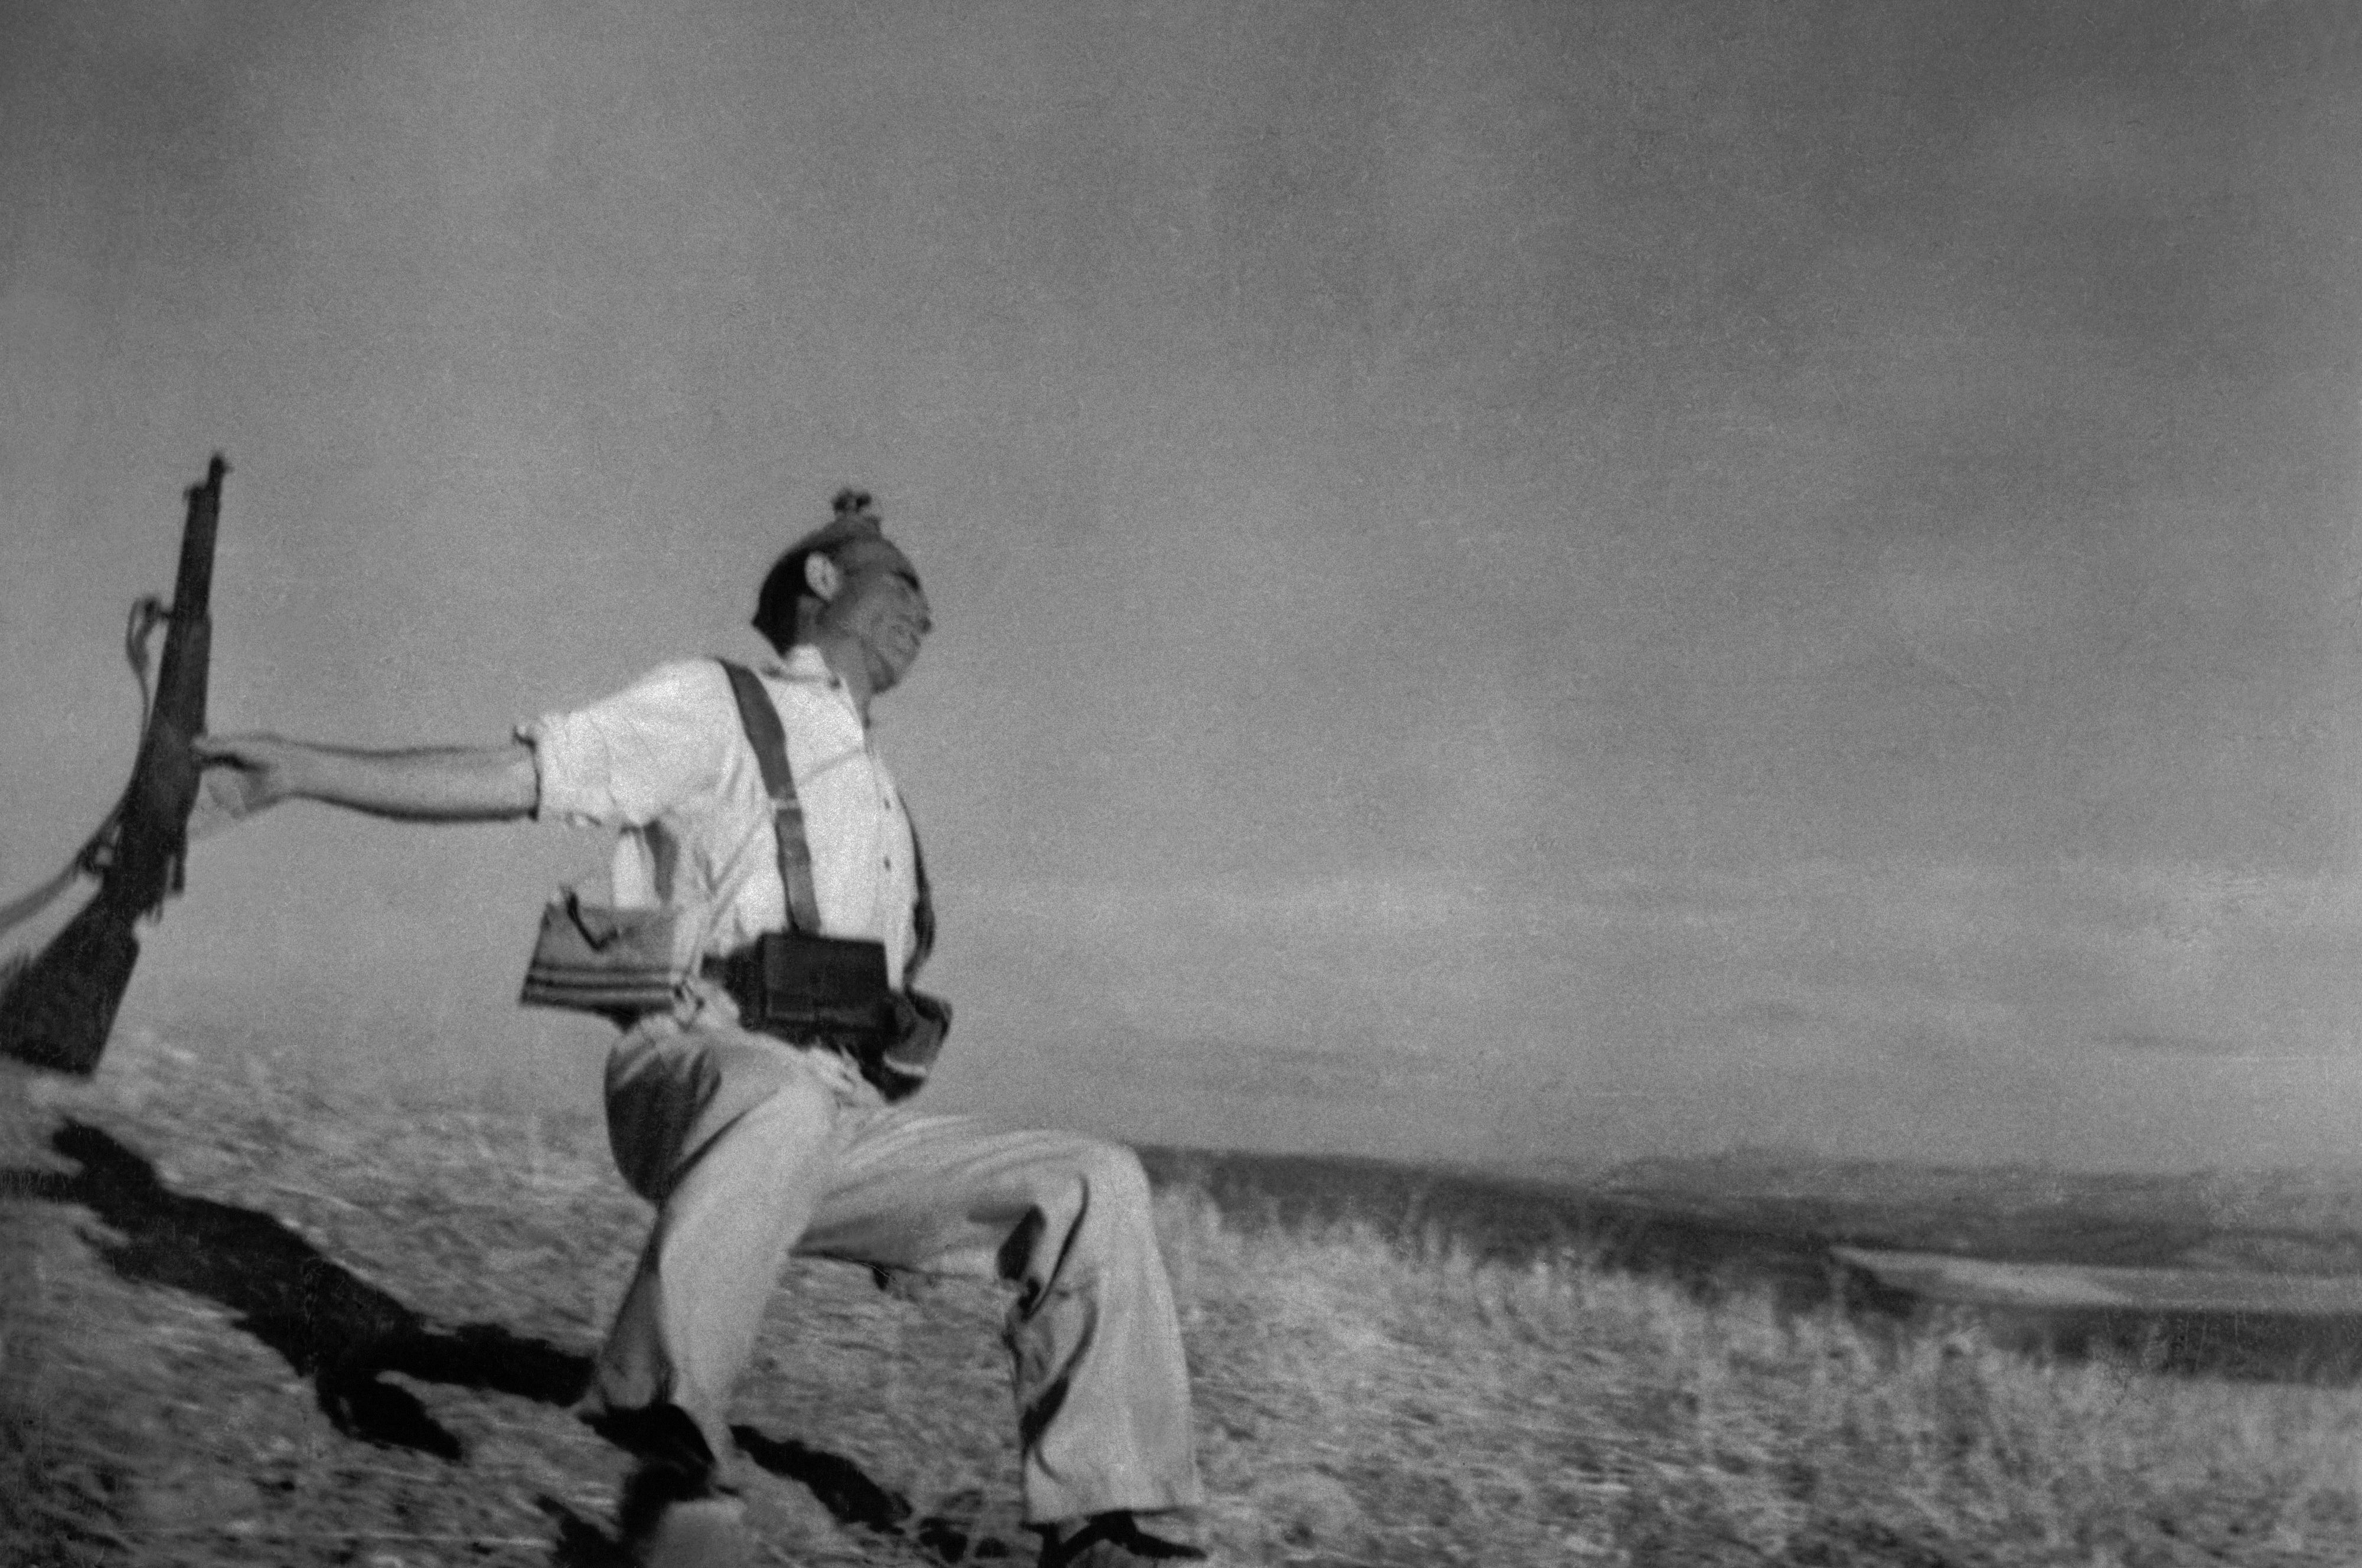 Death of a Loyalist Militiaman, Córdoba front, Spain, September 1936.Foto: Robert Capa/International Center of Photography/Magnum Photos, All Rights Reserved